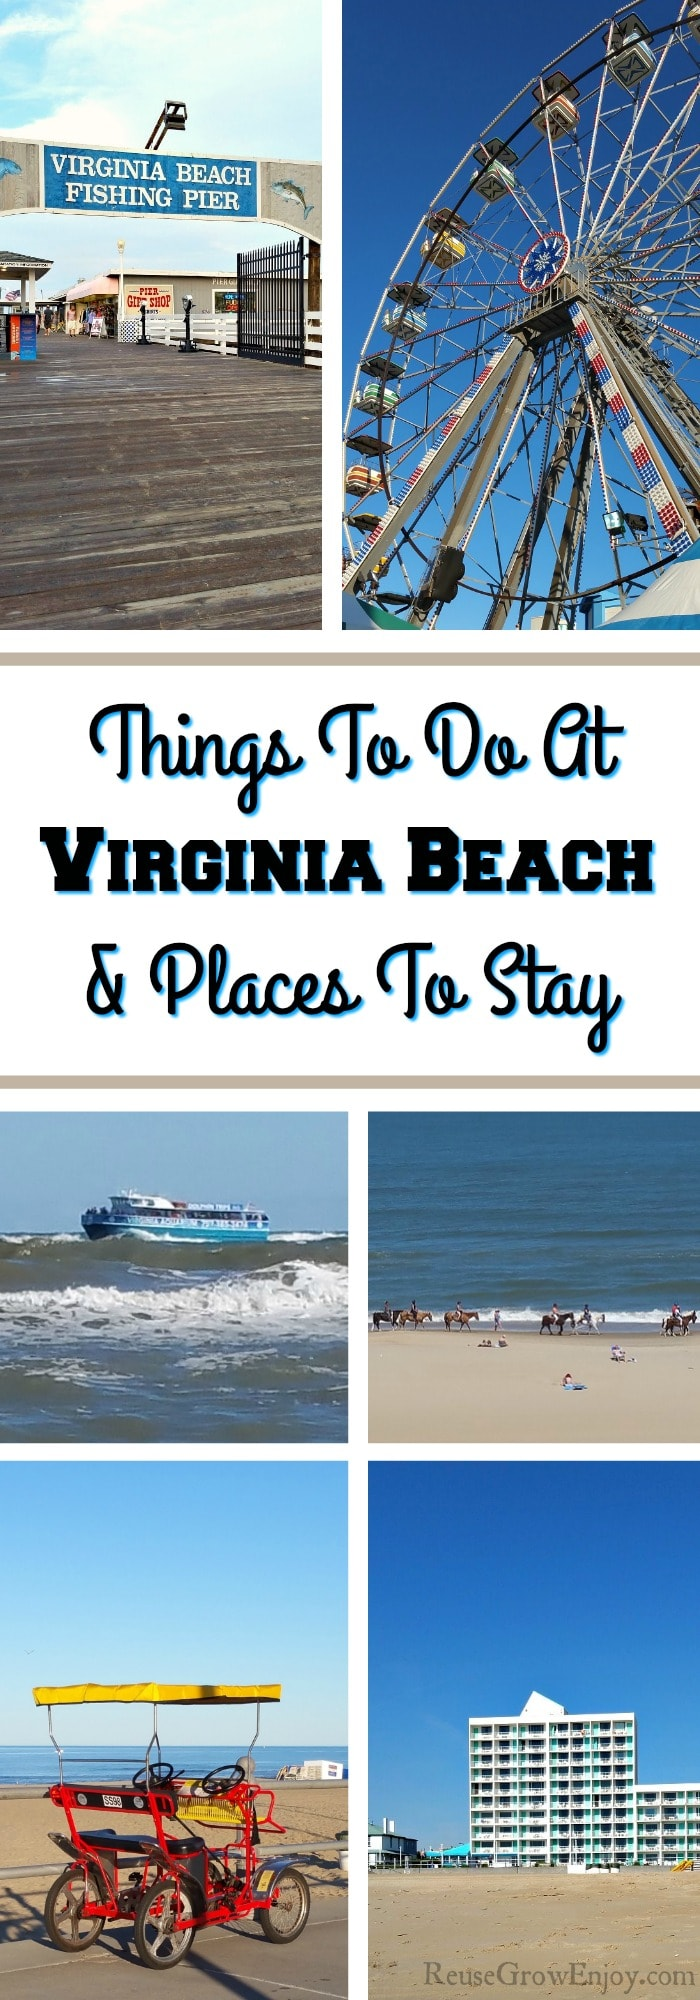 Headed to Virginia Beach? Check out these tips and ideas for things to do at Virginia Beach and places to stay. Each place we have tried, stayed or visited ourselves so you will only get honest thoughts.